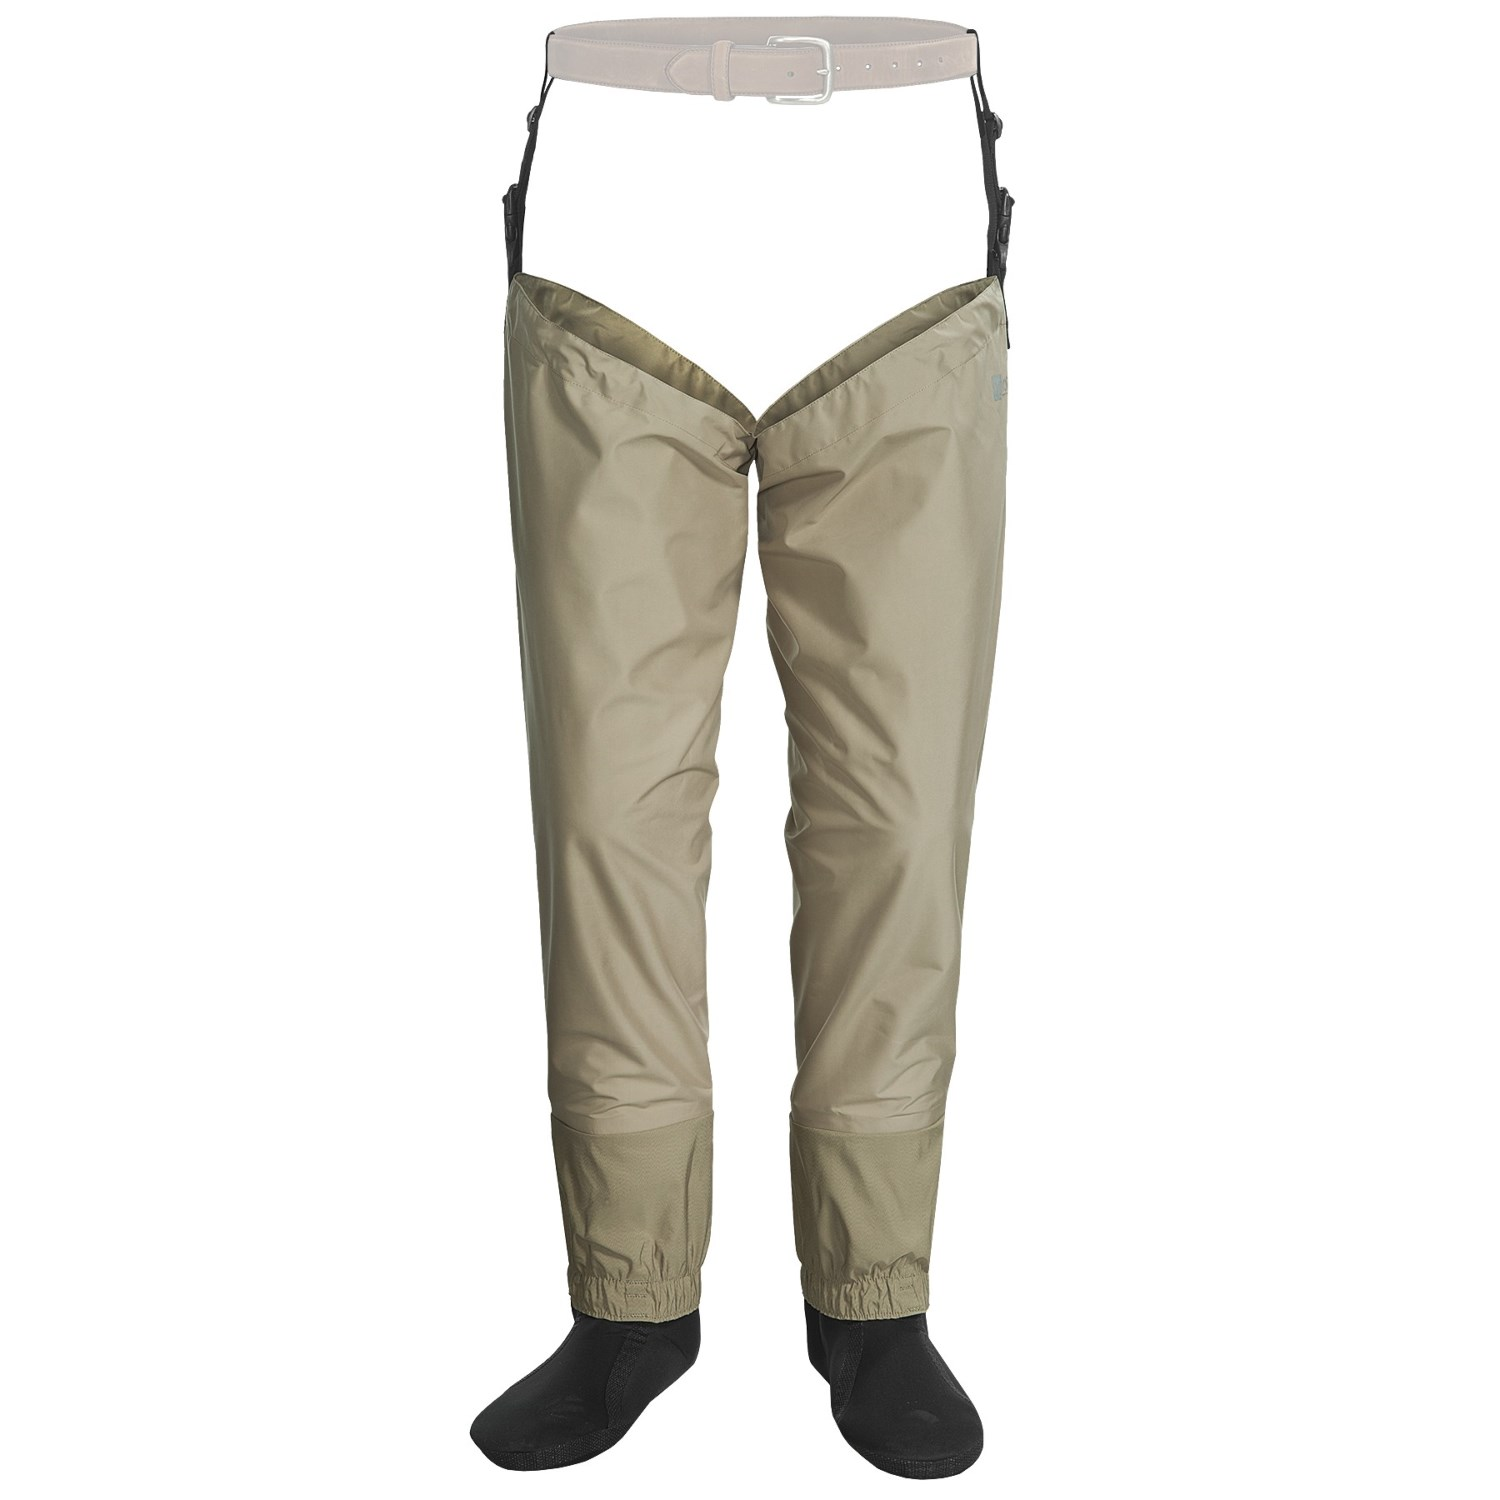 New patagonia watermaster hip high men 39 s fly fishing for Fly fishing waders